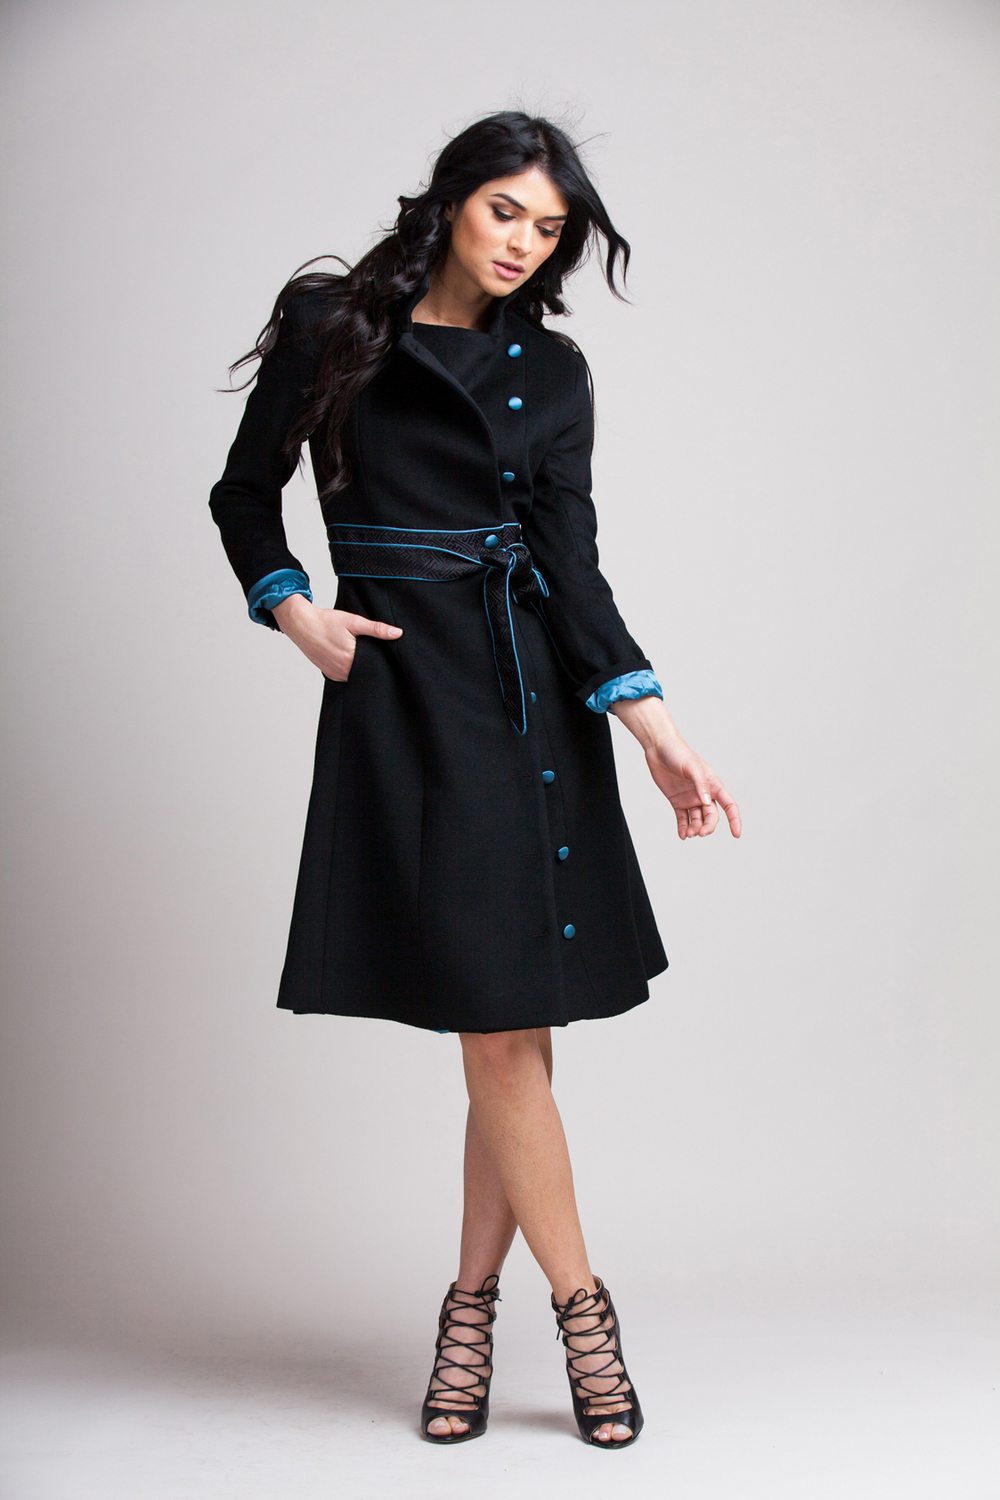 Azurean-Evening-Coat-Teresa-Crowninshield-Cashmere-Angora-Wool-Coat-Silk-Lining-Belted-Lapel03.jpg